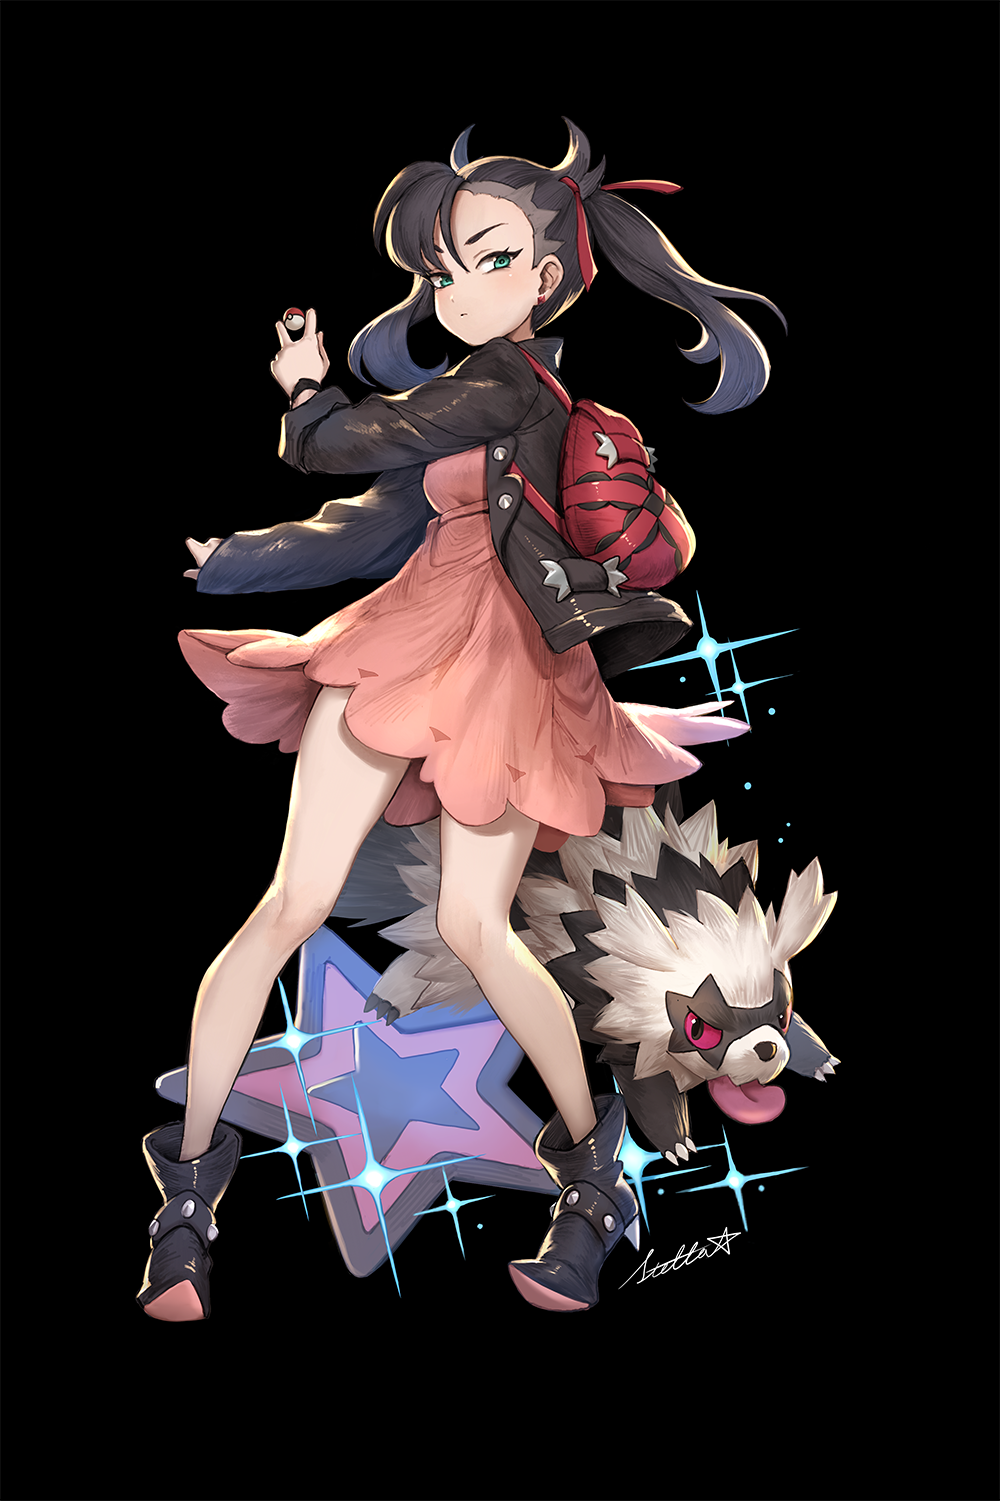 1girl aqua_eyes asymmetrical_hair backpack bag bangs black_hair black_jacket choker commentary_request dress earrings galarian_form galarian_zigzagoon gen_8_pokemon hair_ribbon highres jacket jewelry leather leather_jacket long_sleeves mary_(pokemon) pink_dress poke_ball poke_ball_(generic) pokemon pokemon_(creature) pokemon_(game) pokemon_swsh ribbon short_twintails stellarism twintails